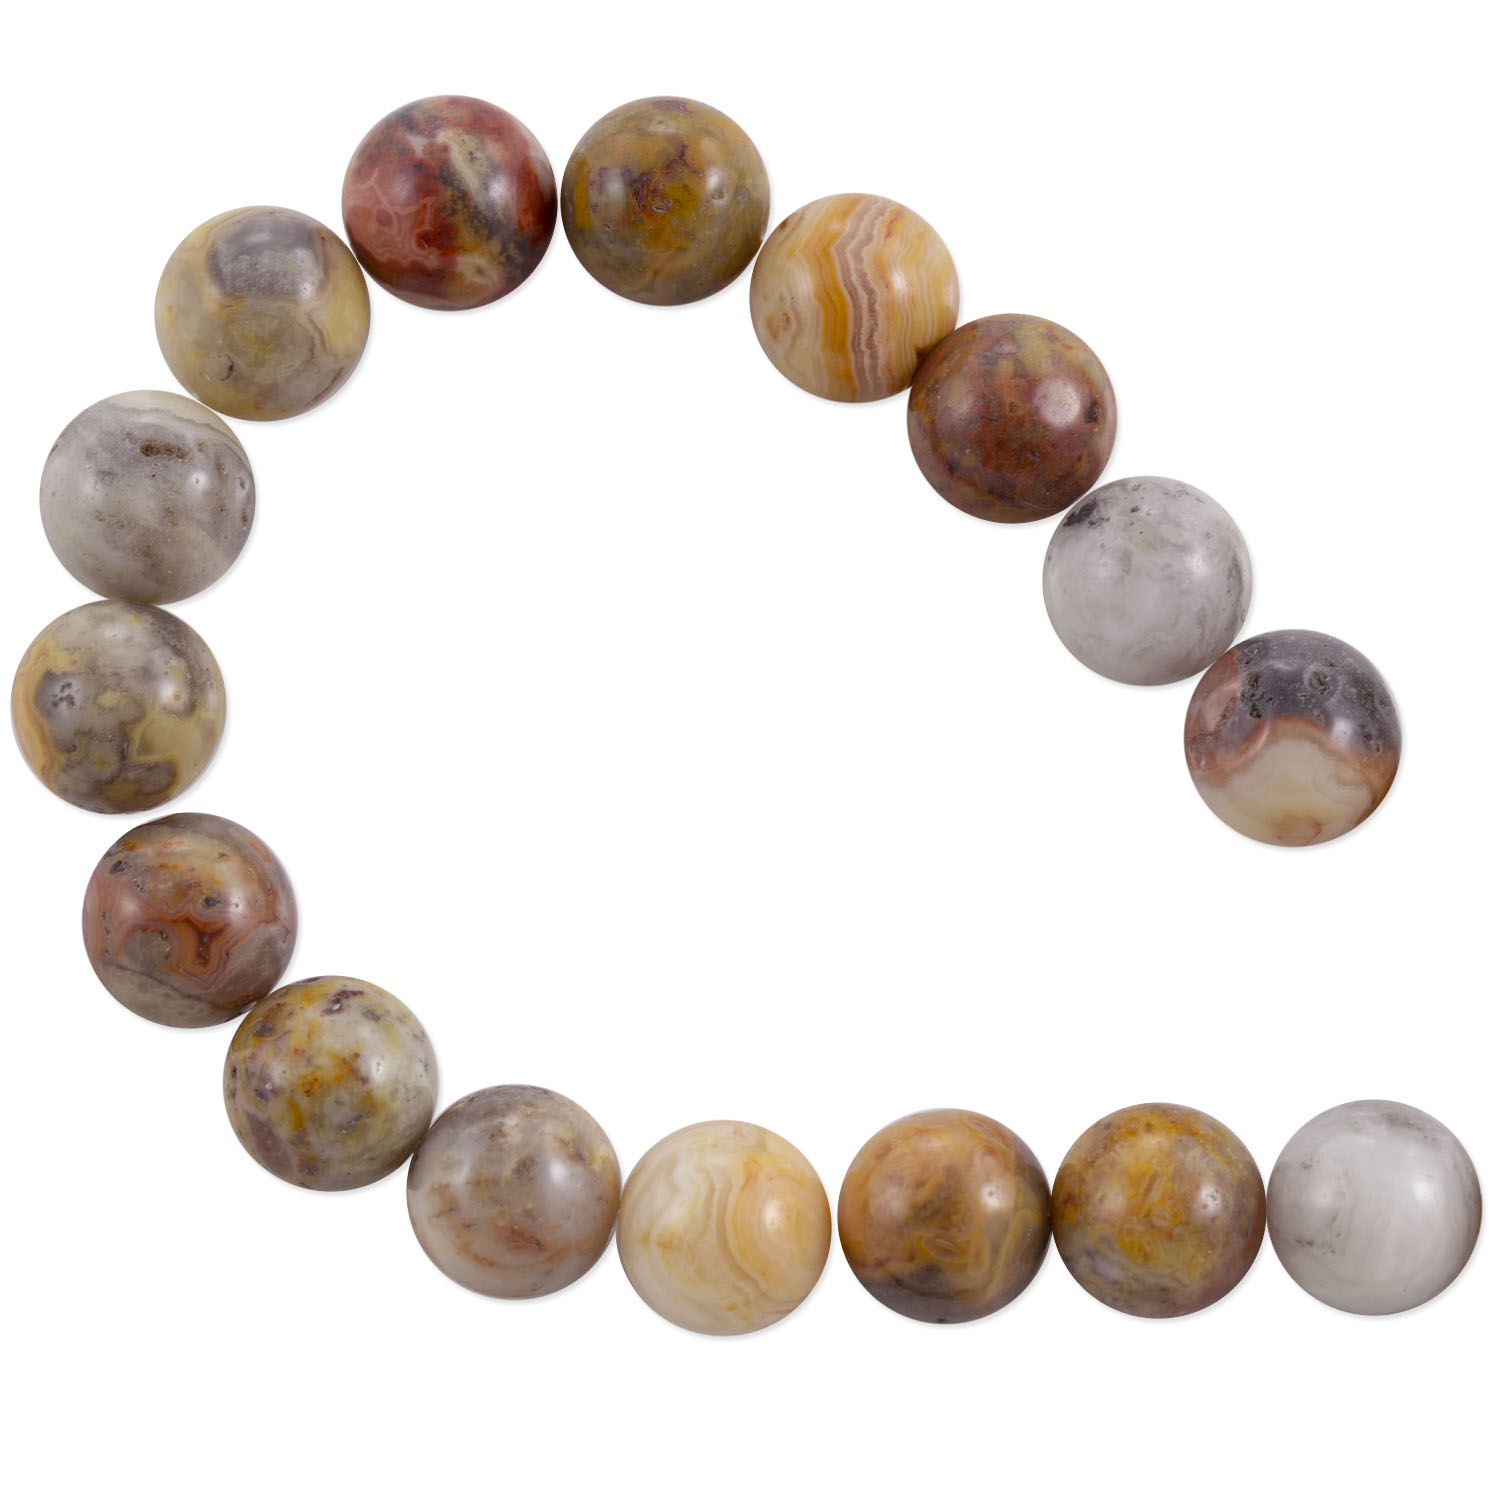 11mm Crazy Lace Agate Faceted Fancy Carved Briolettes 8 Pieces Nice Quality Crazy Lace Agate Faceted Star Briolettes EVE206